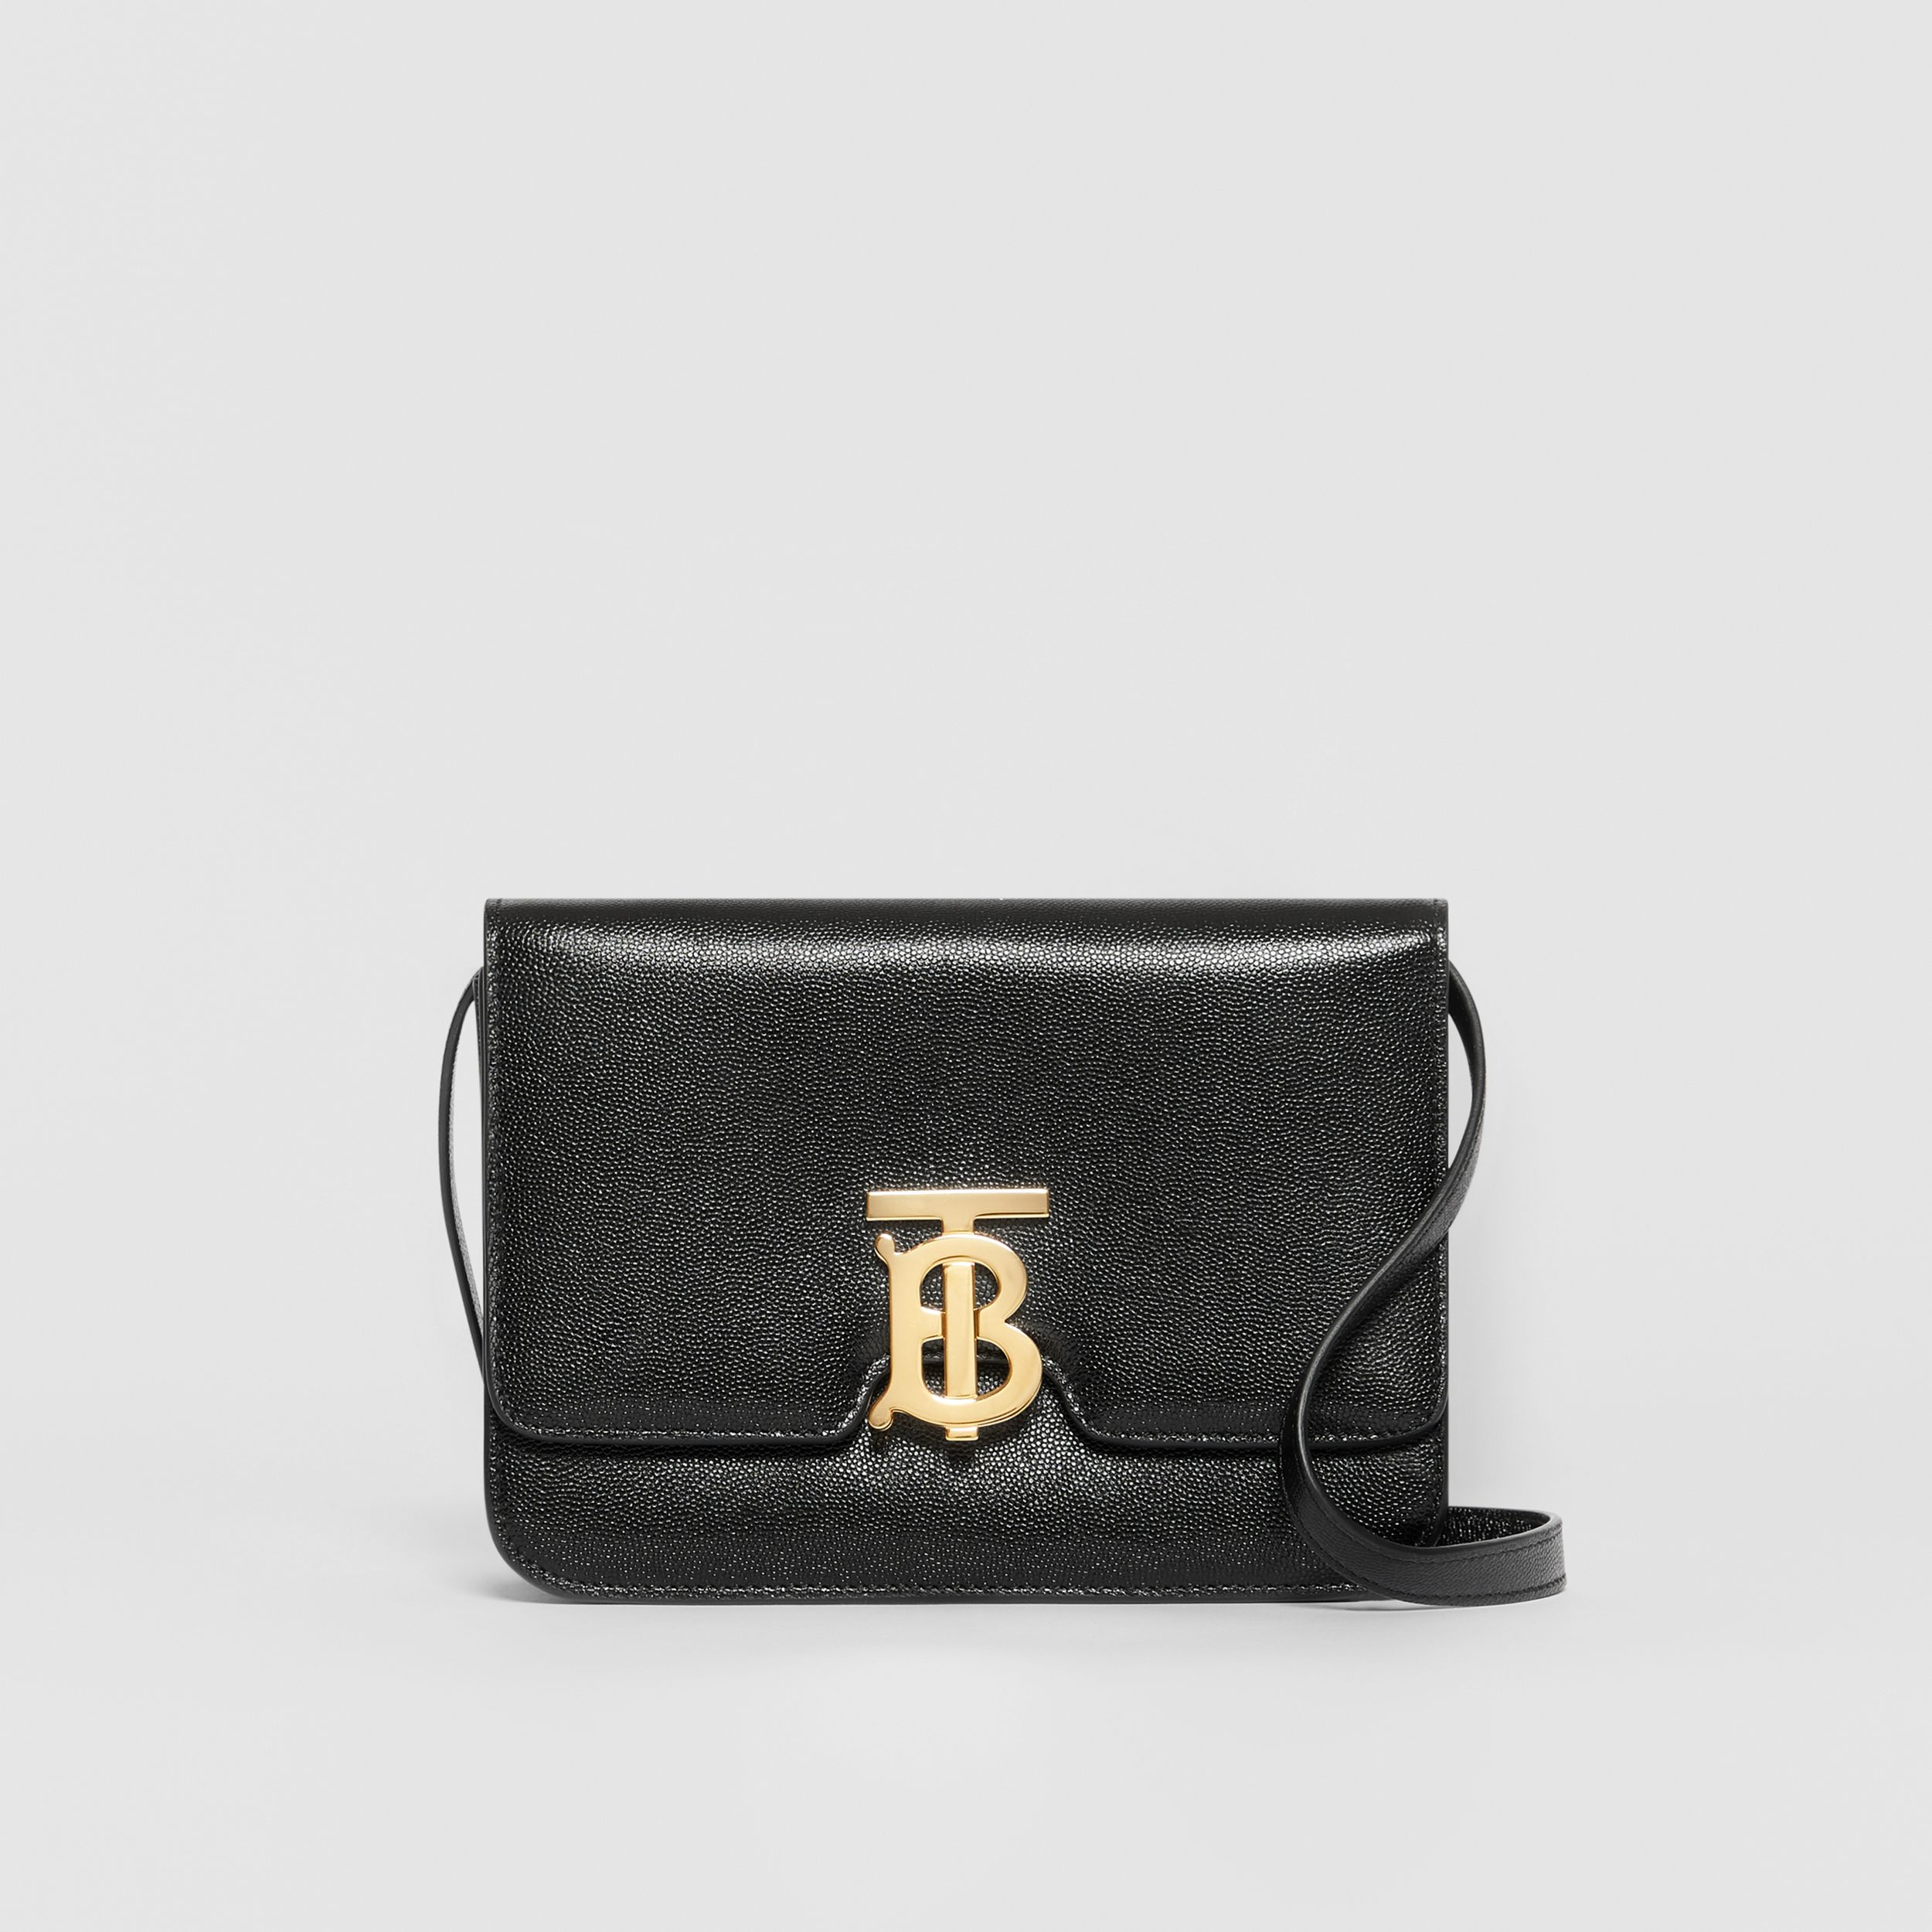 Small Grainy Leather TB Bag in Black | Burberry - 1